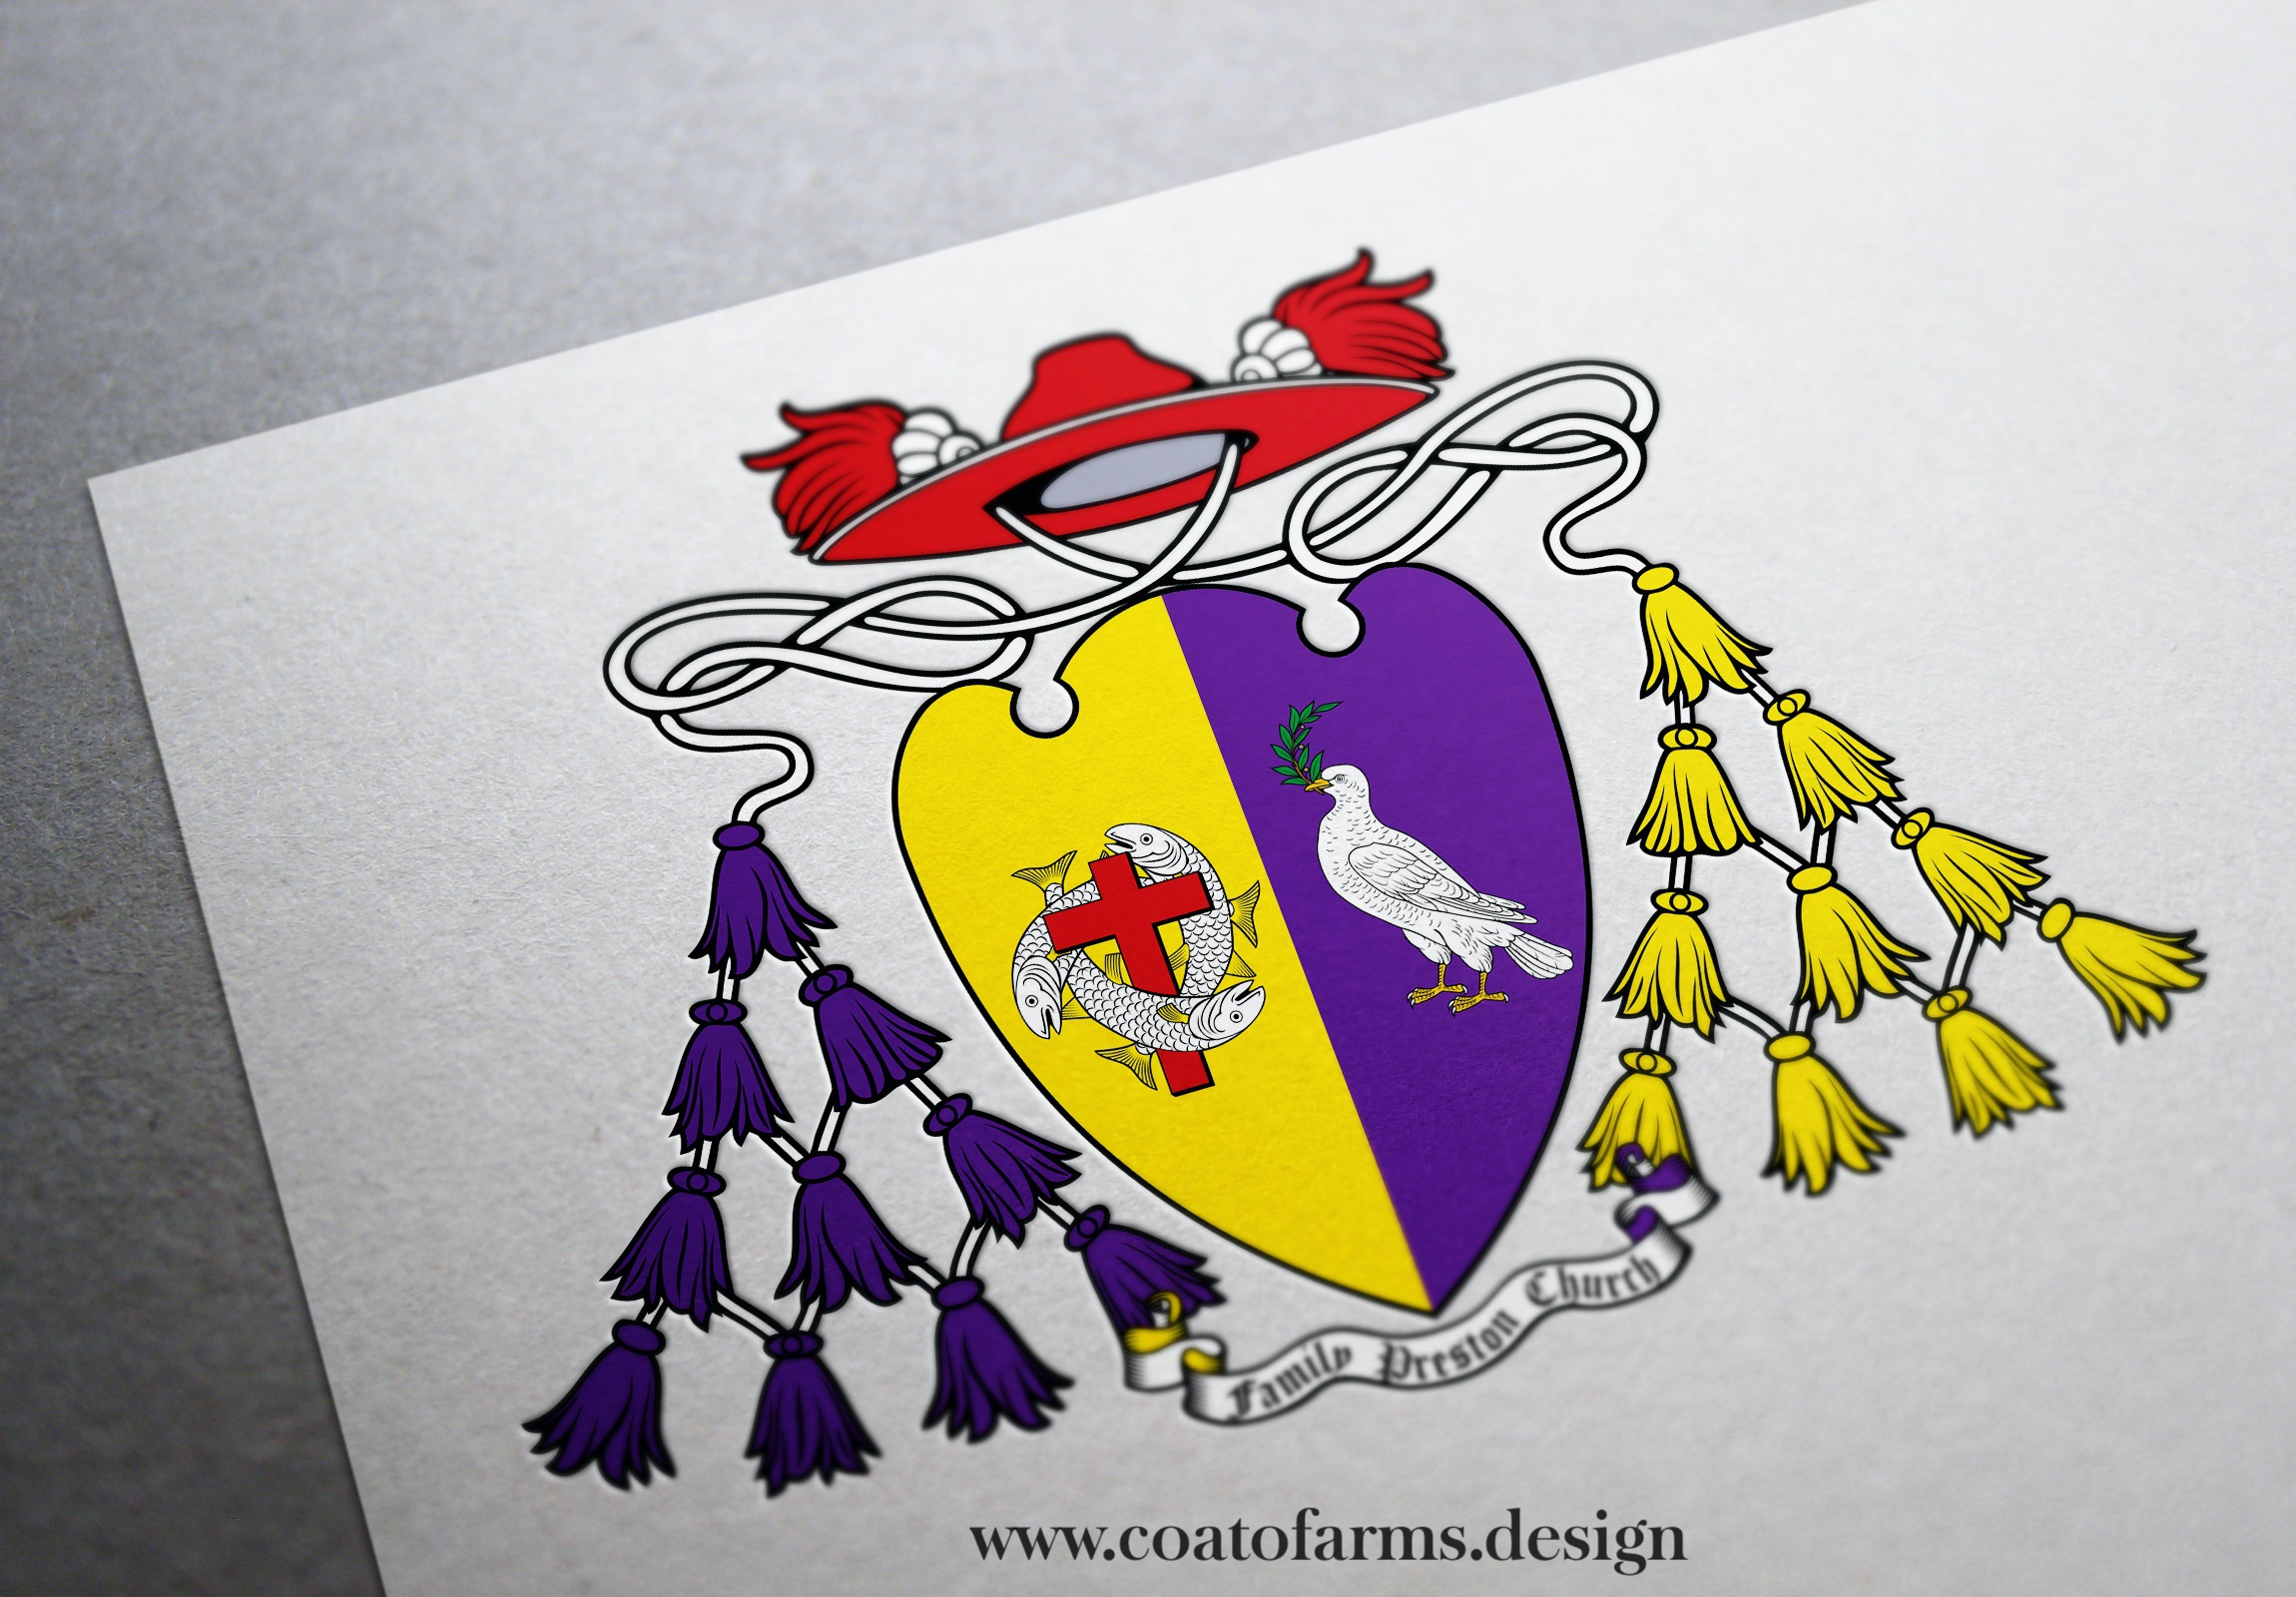 Coat of arms for an archbishop from the Preston Church Family